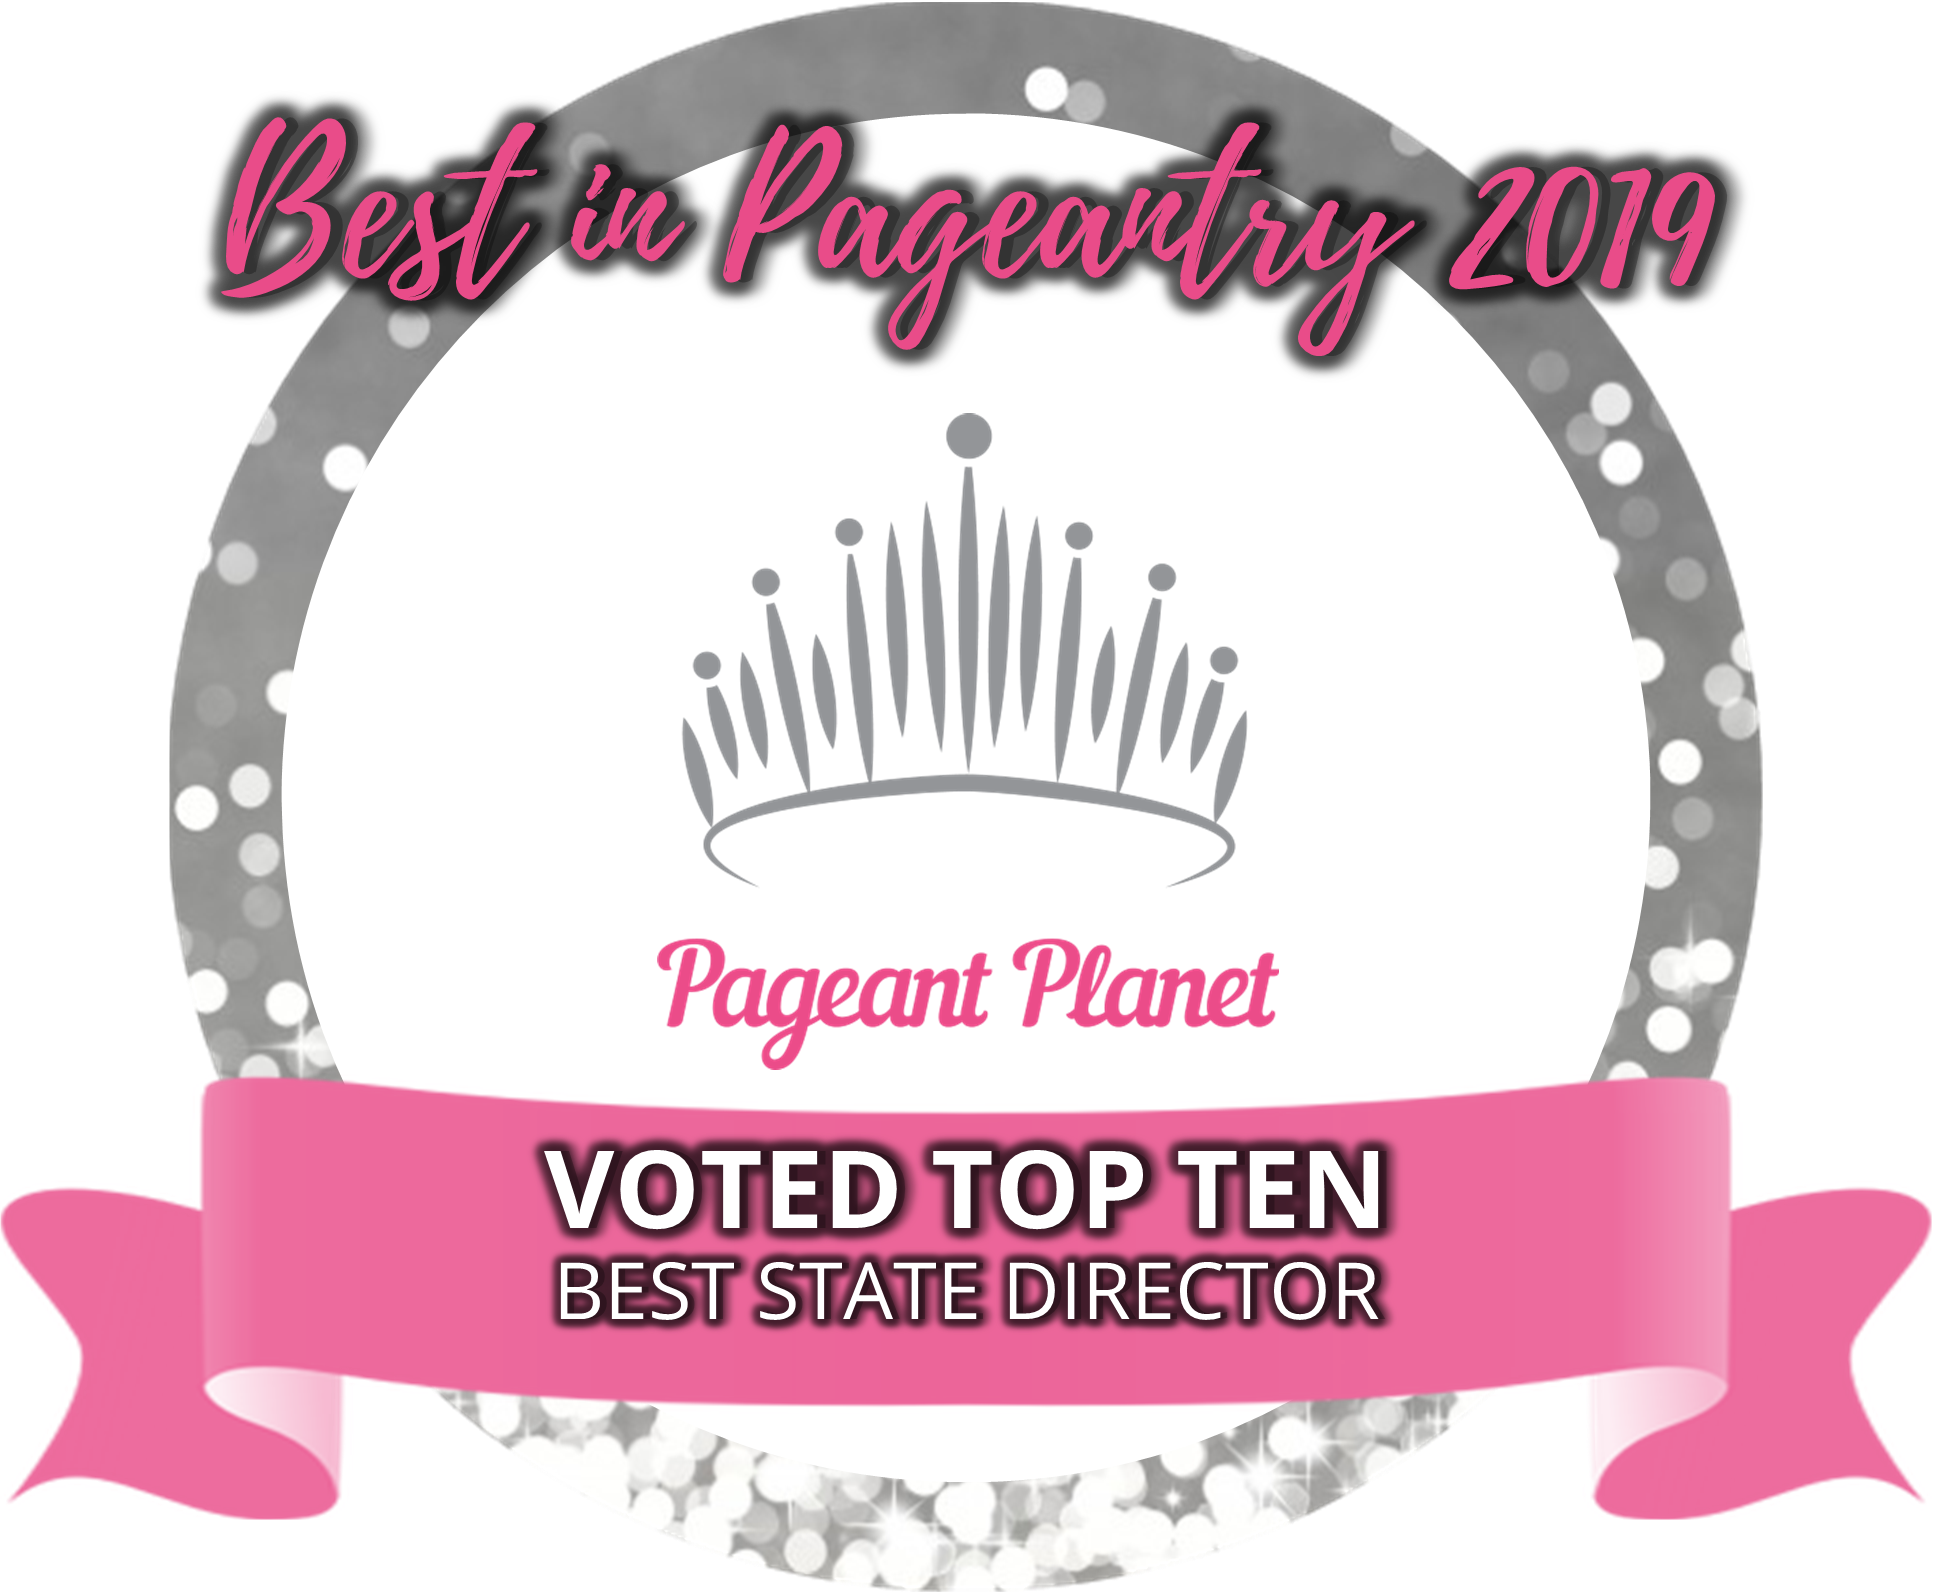 Top 10 State Pageant Directors of 2019